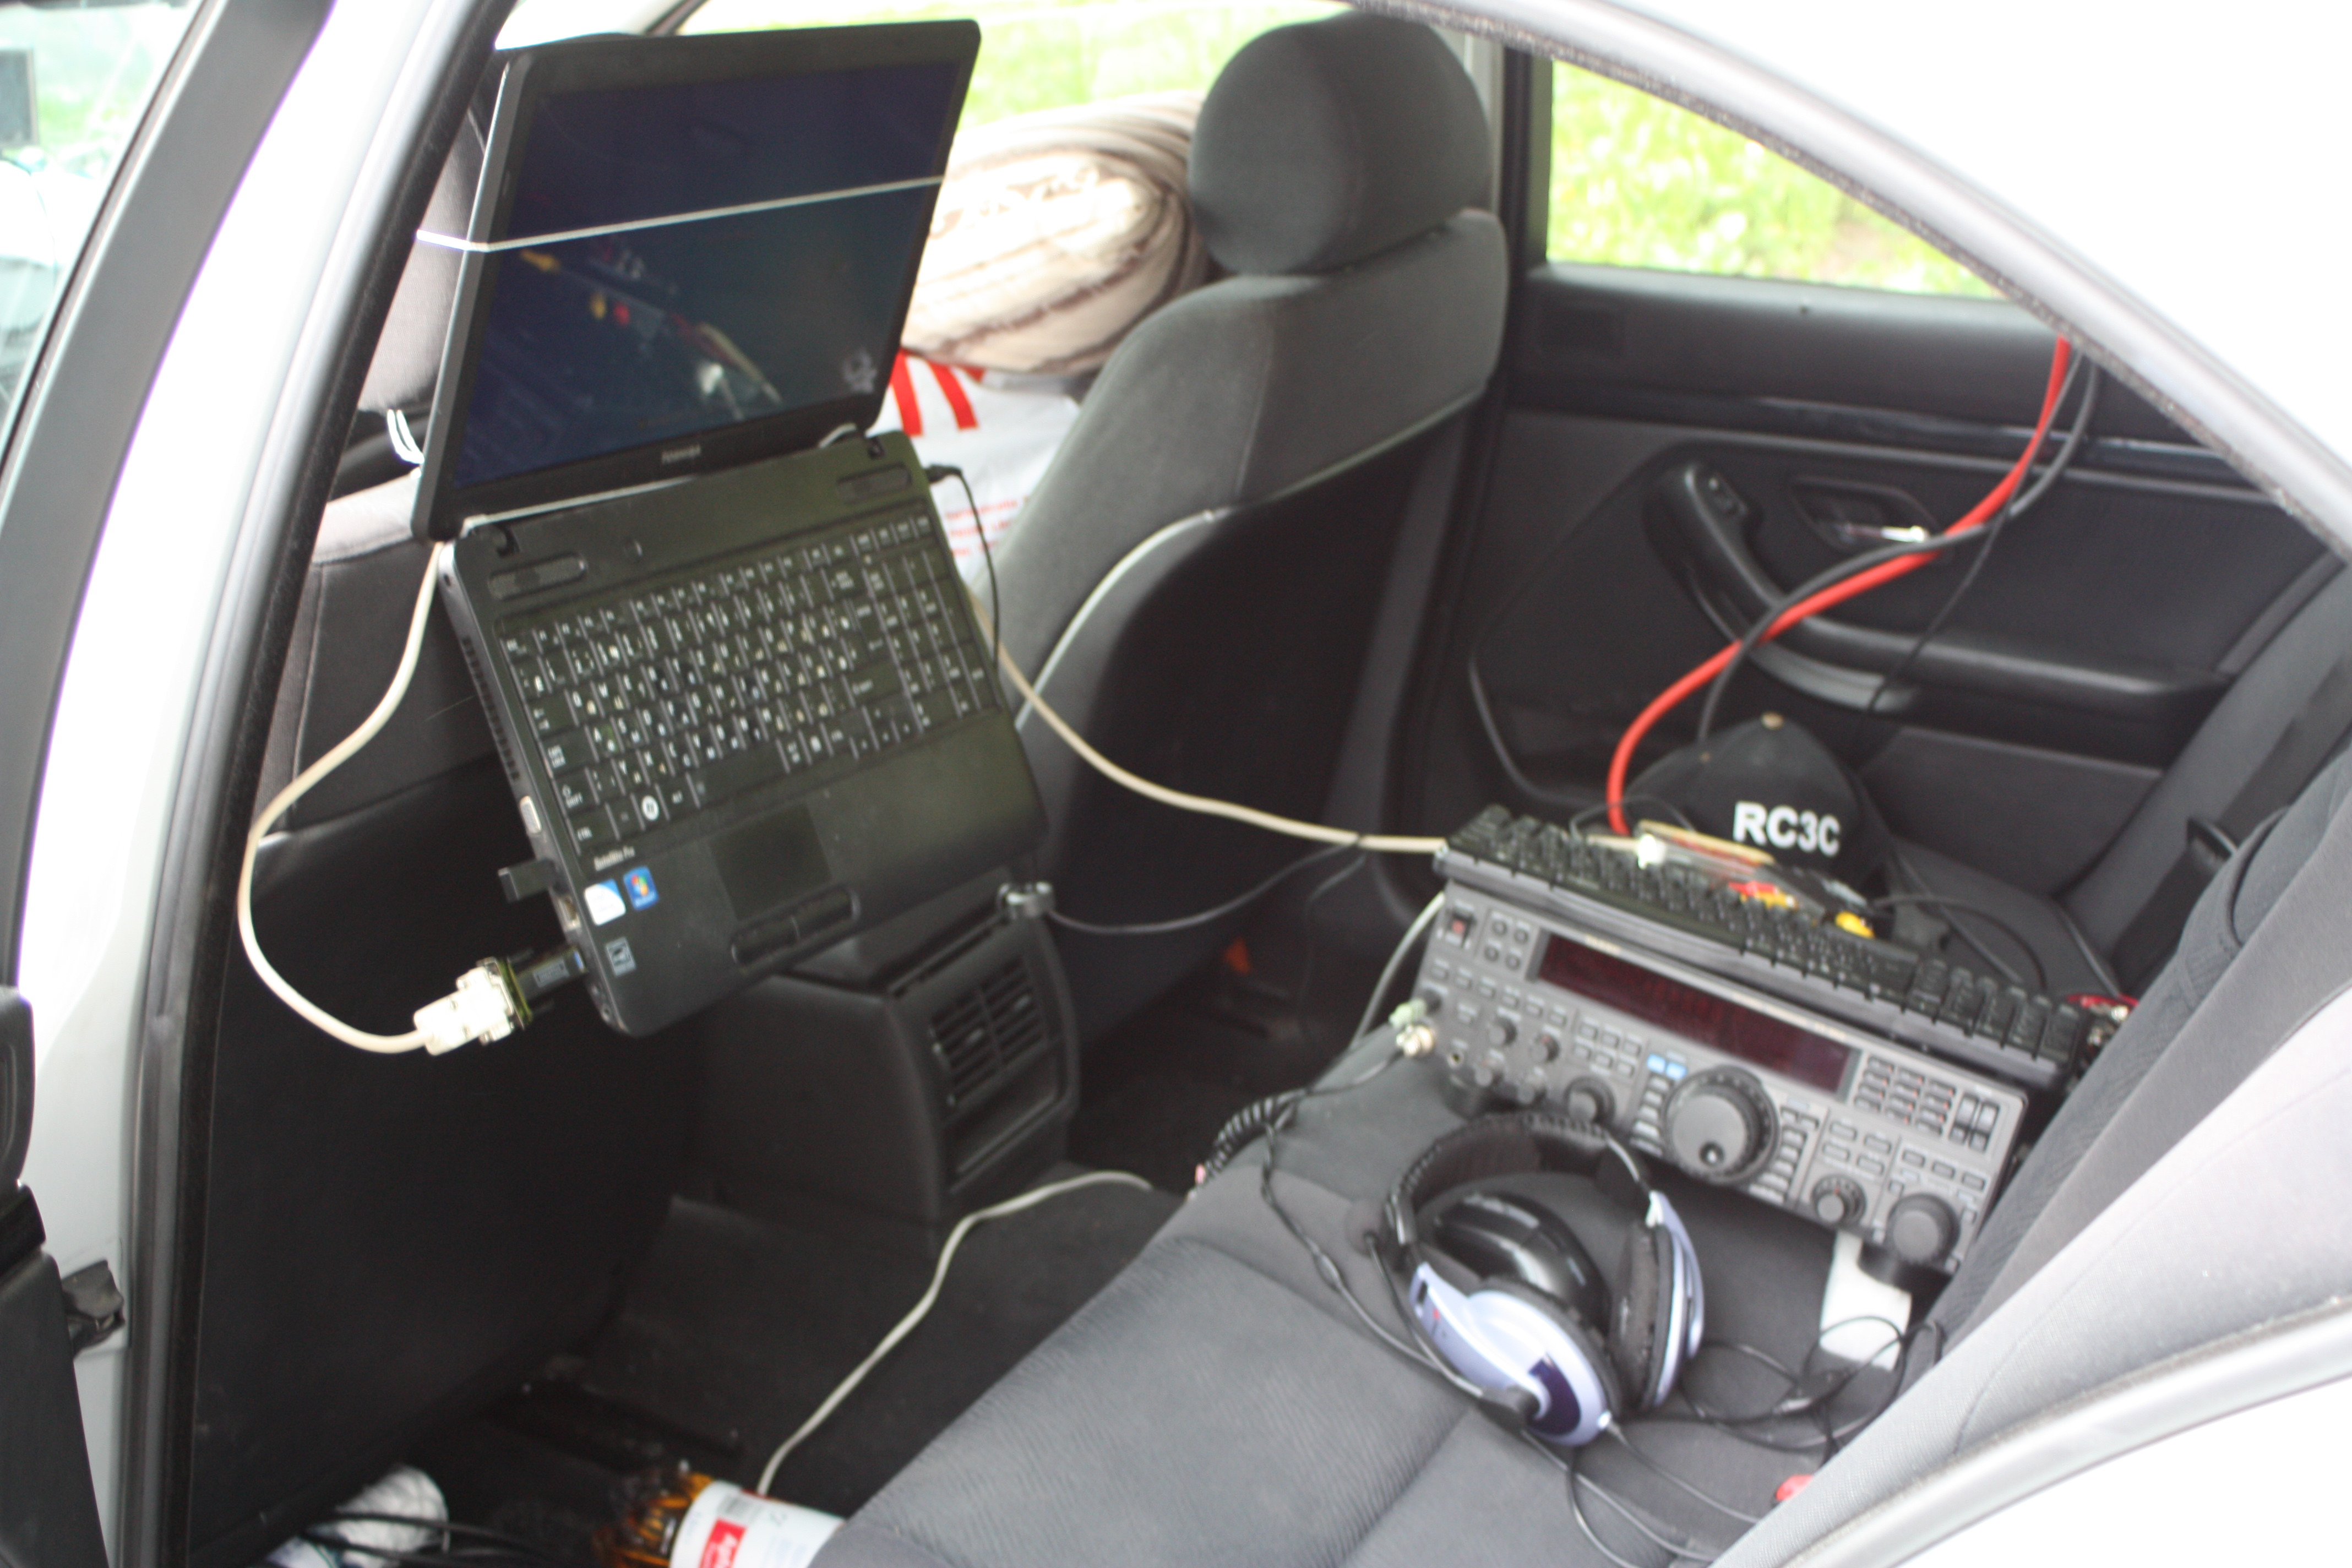 HB0/RC3C mobile shack in Gaflei